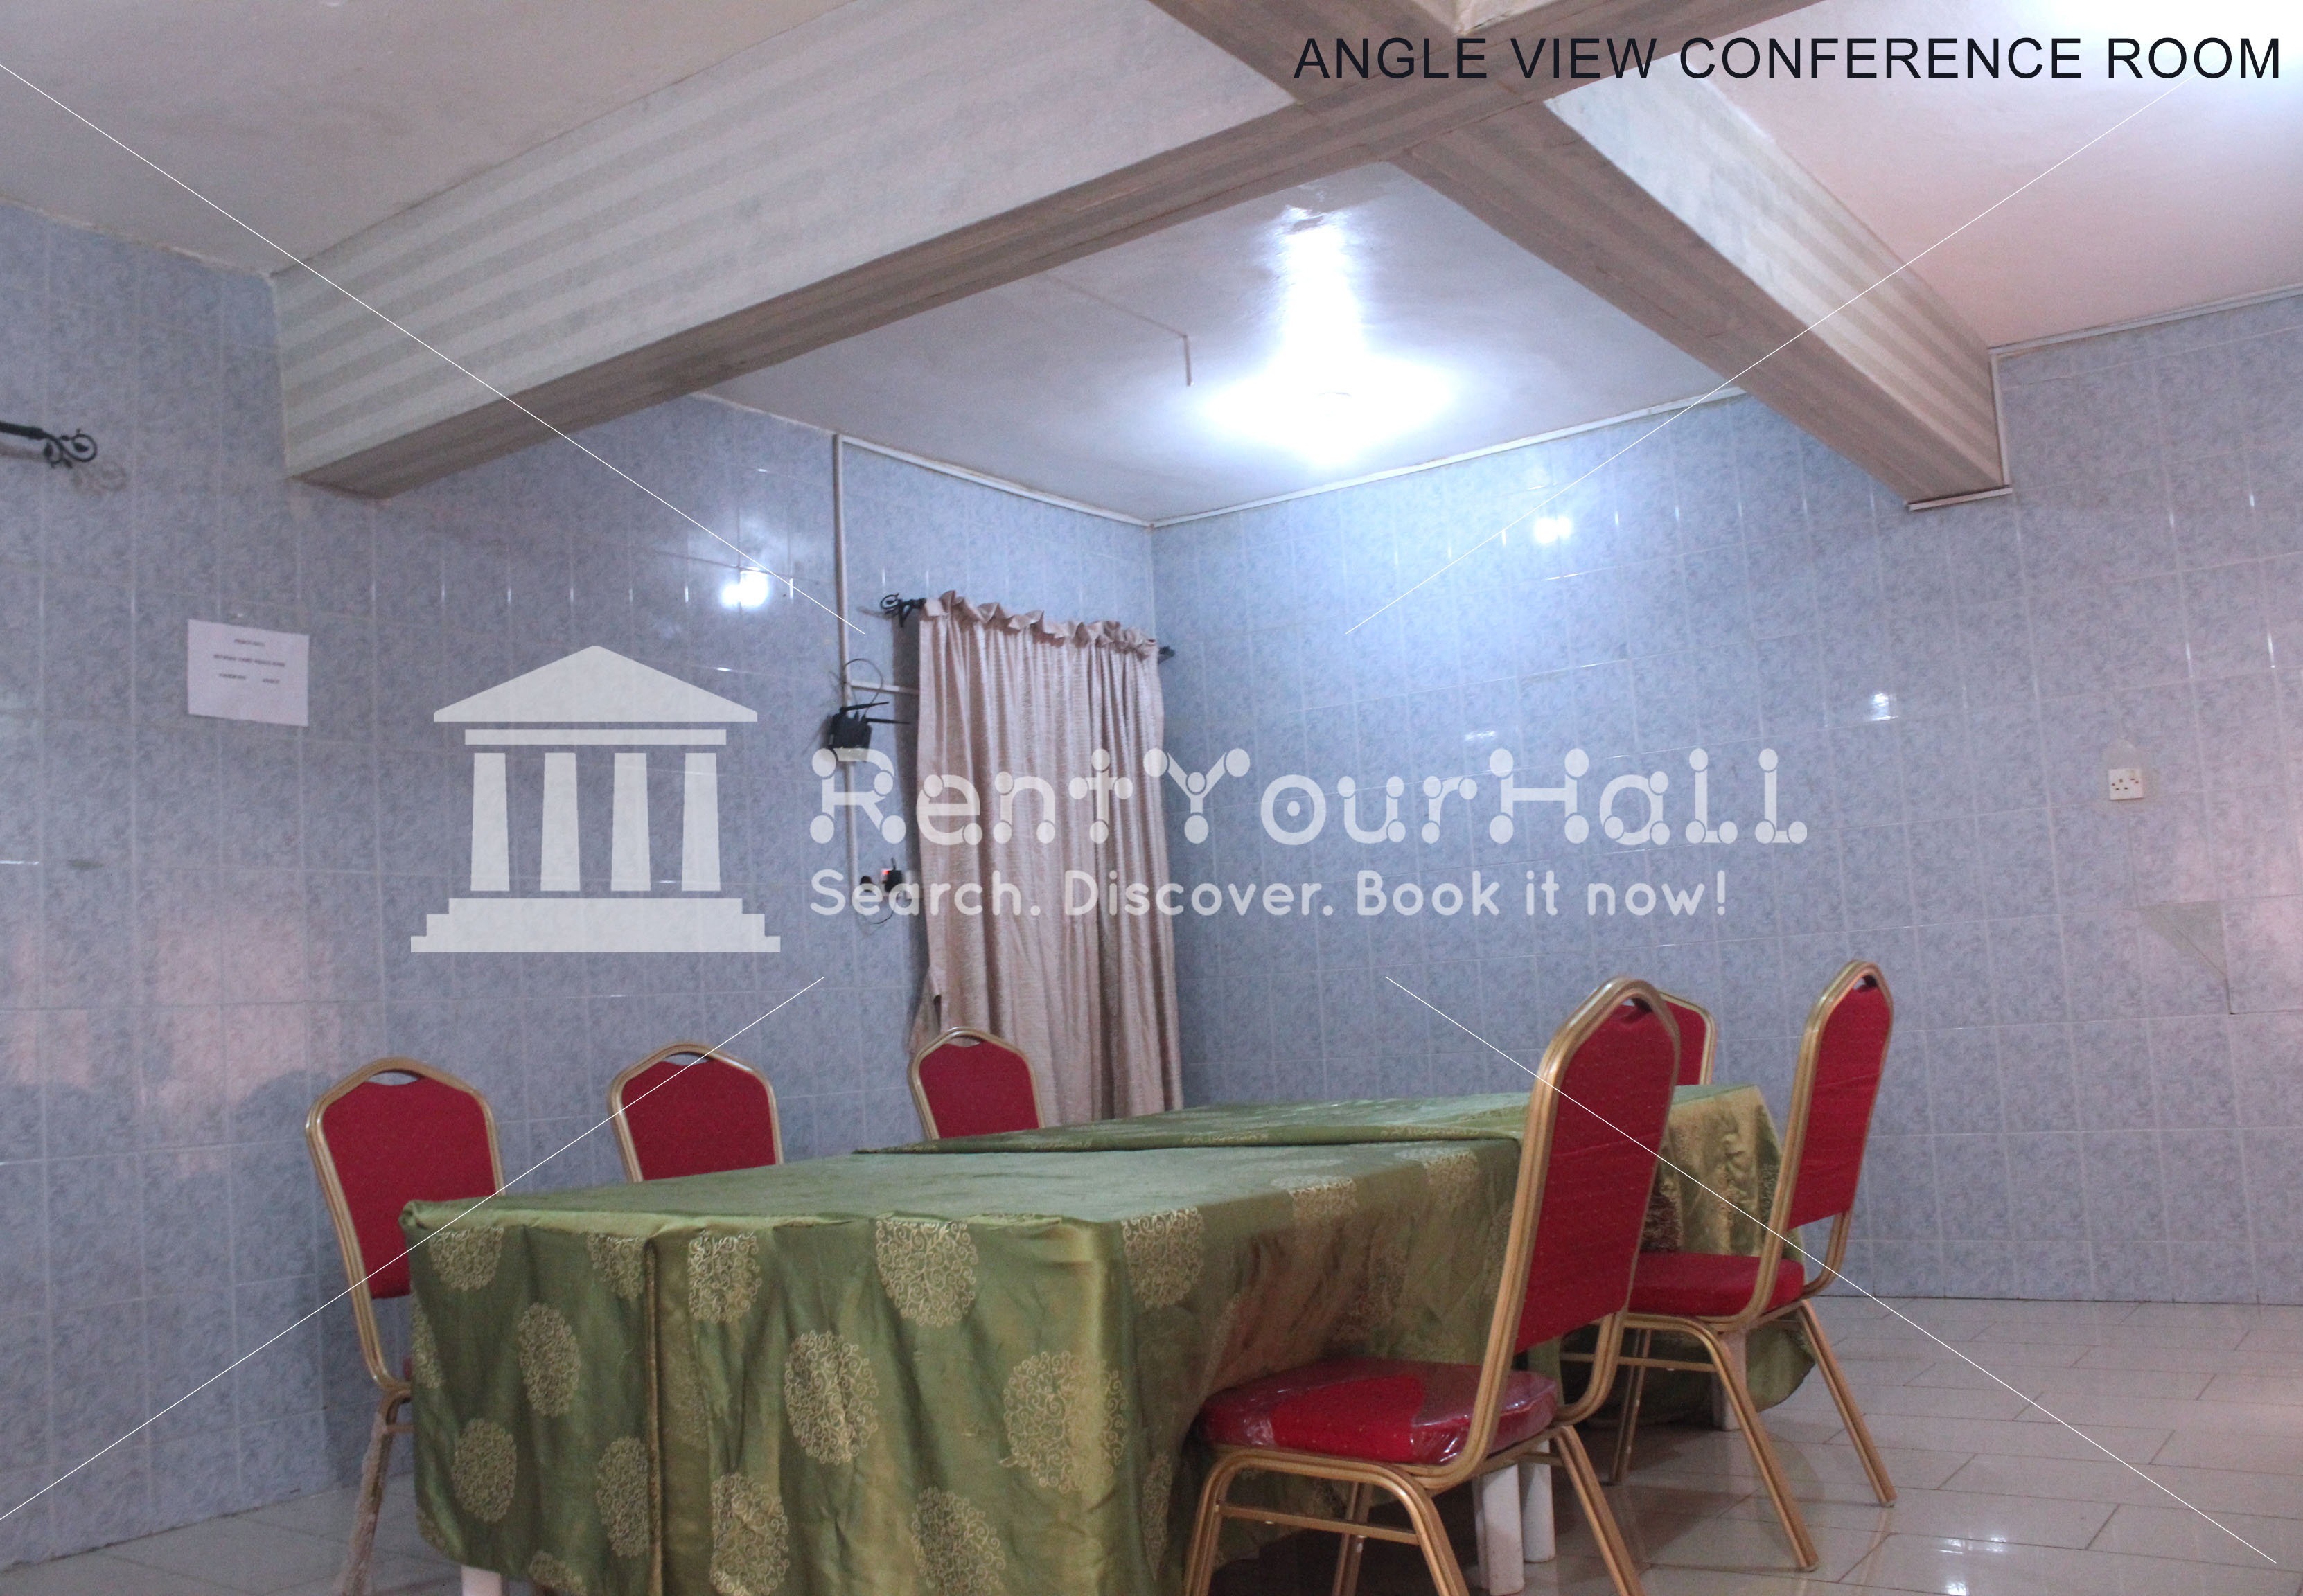 ANGLE_VIEW_CONF_ROOM,,,,.jpg